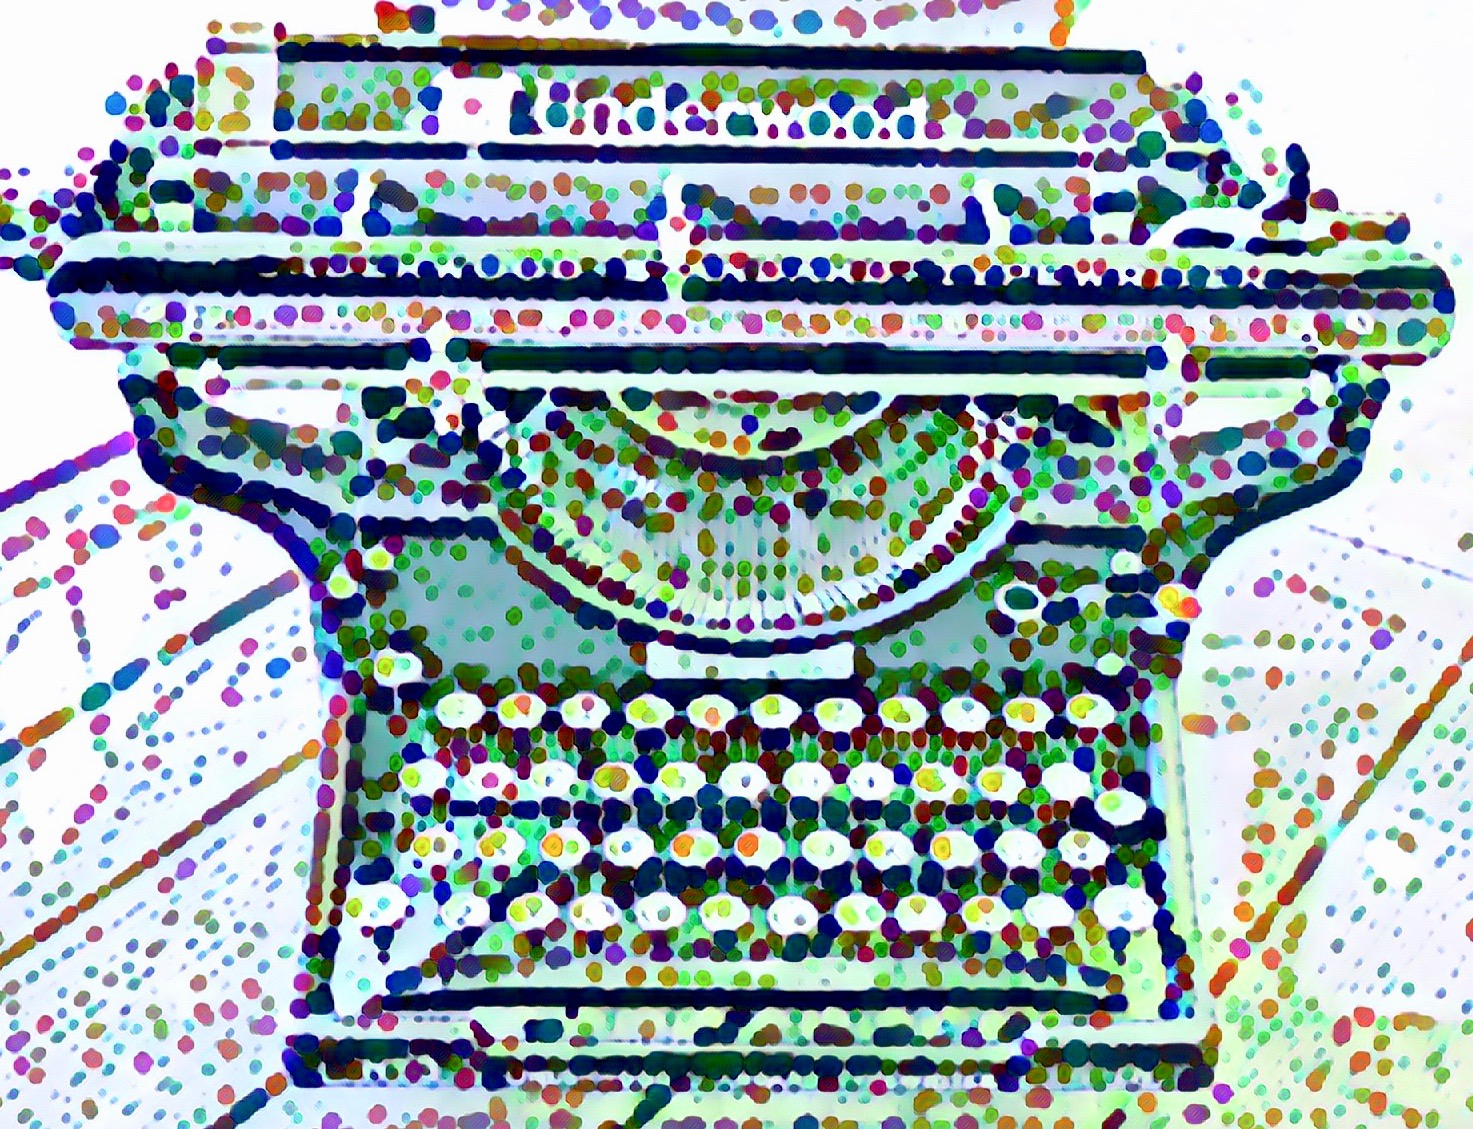 Festive Old Fashion Typewriter